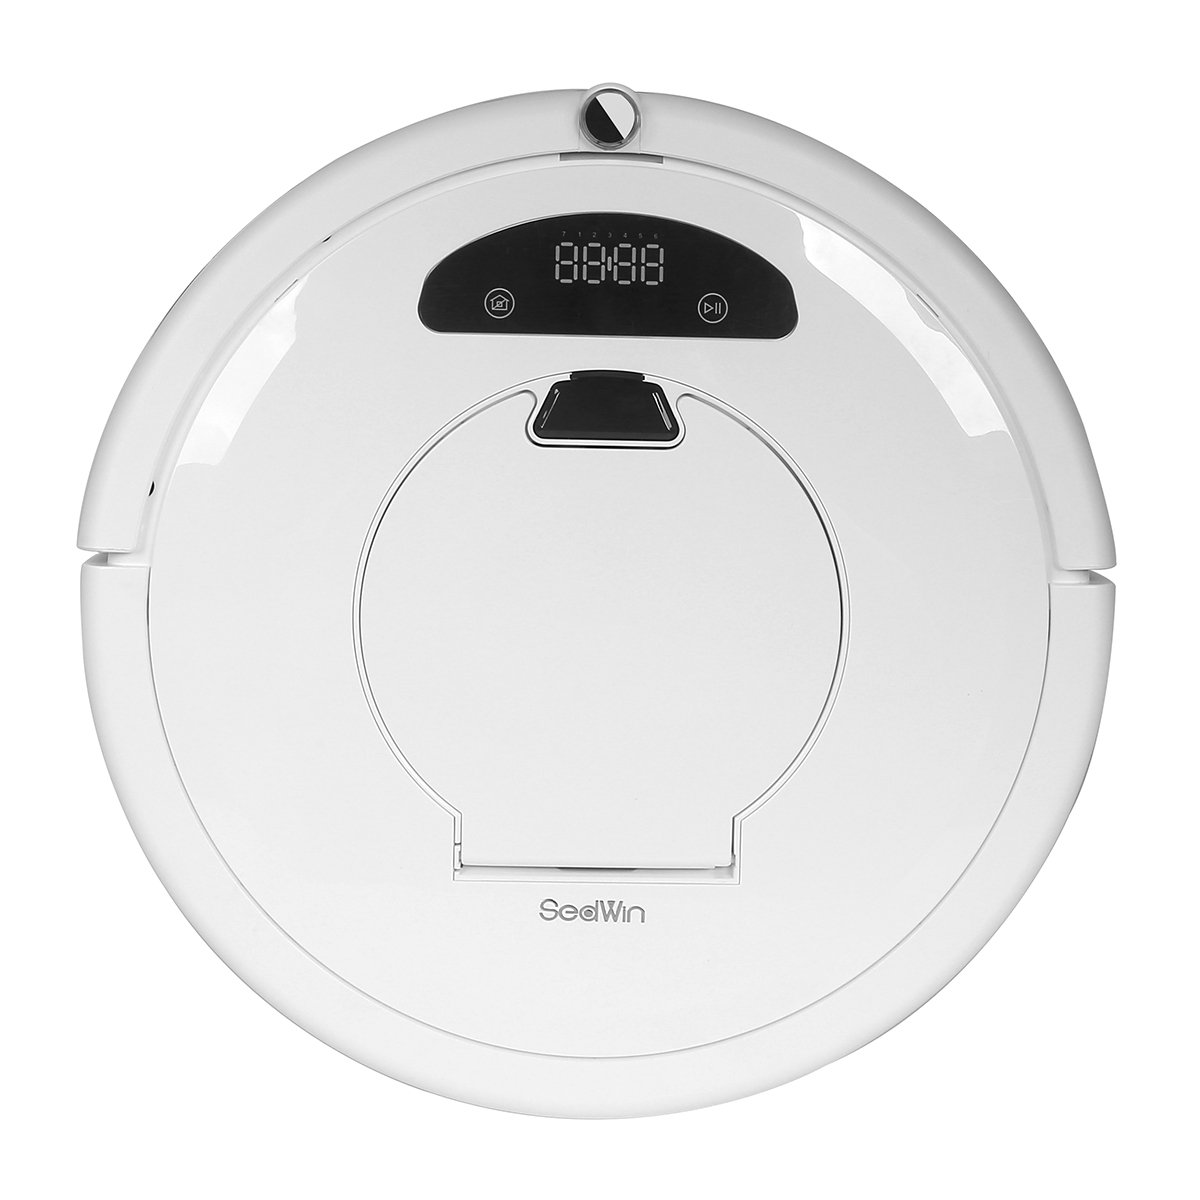 Sedwin Robotic Vacuum Cleaner for Pets and Allergies Home, Pearl White, Remote Control Self Charging Cleaning Devices